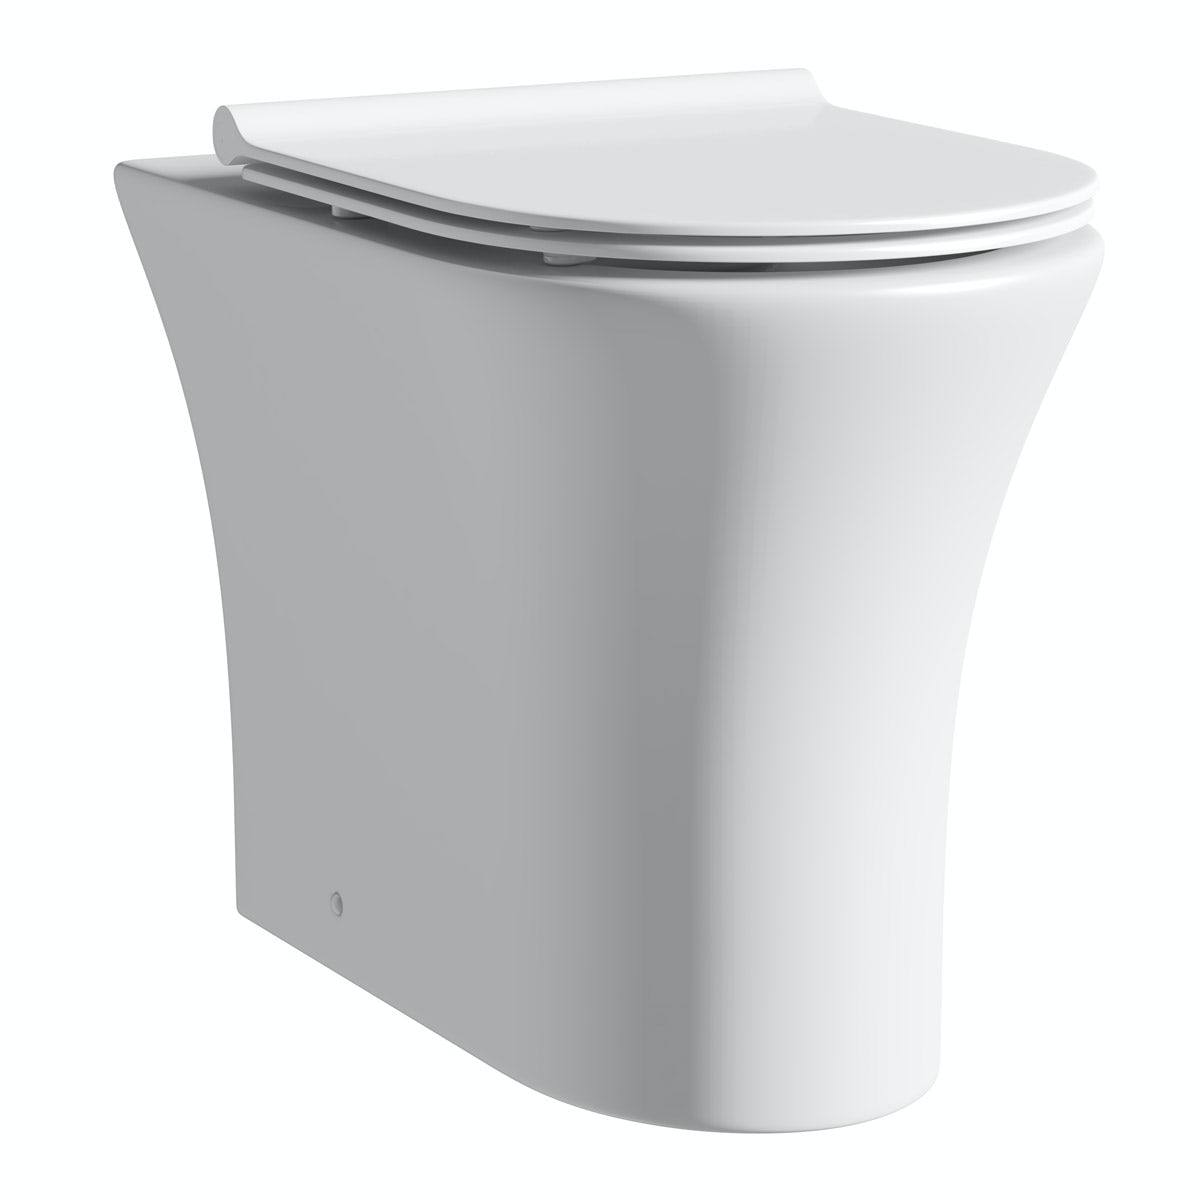 Mode Hardy rimless back to wall toilet with slimline soft close seat